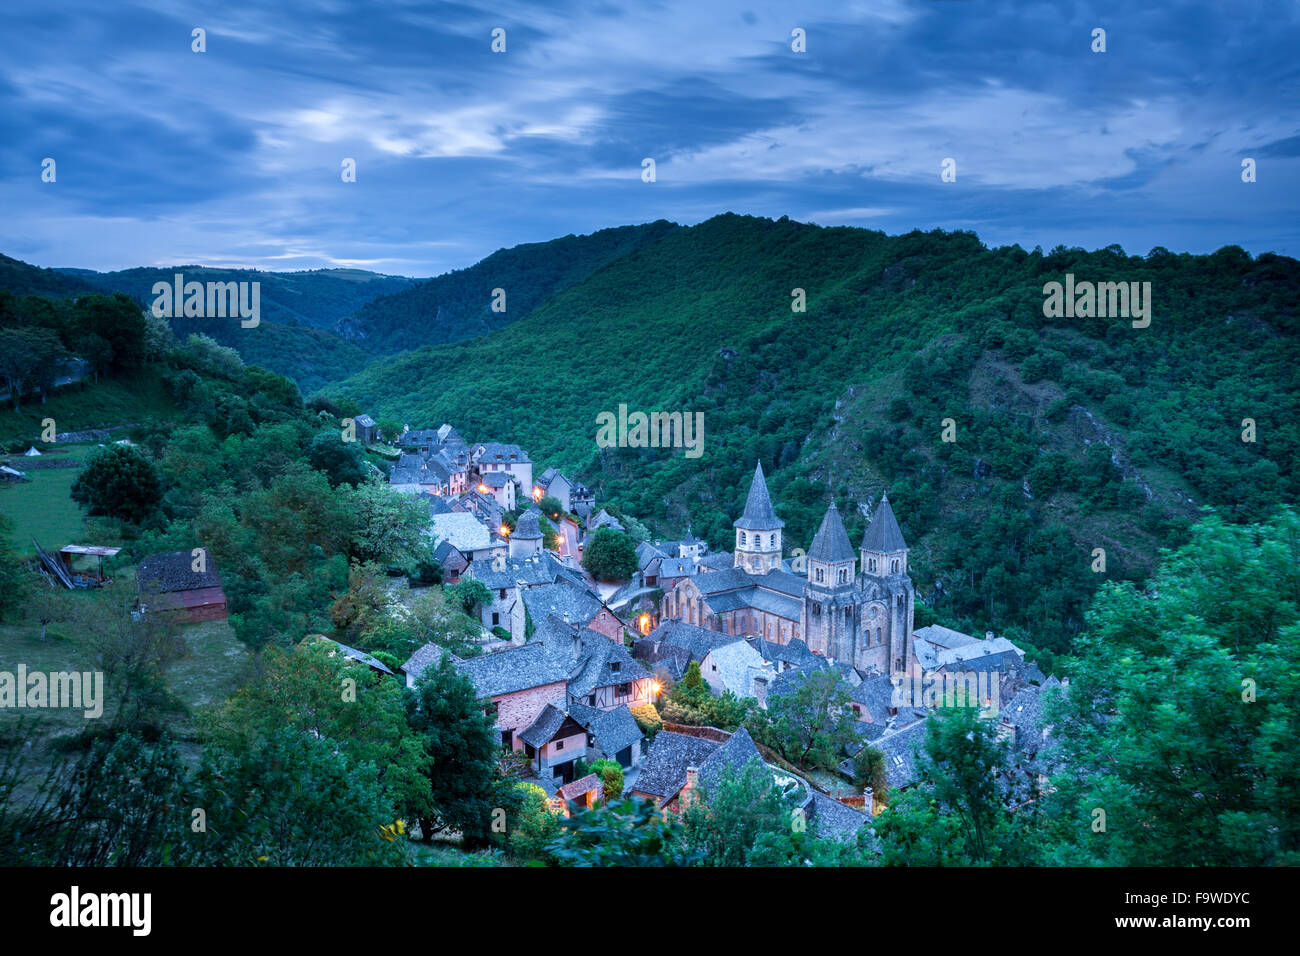 The village of Conques France before sunrise - Stock Image